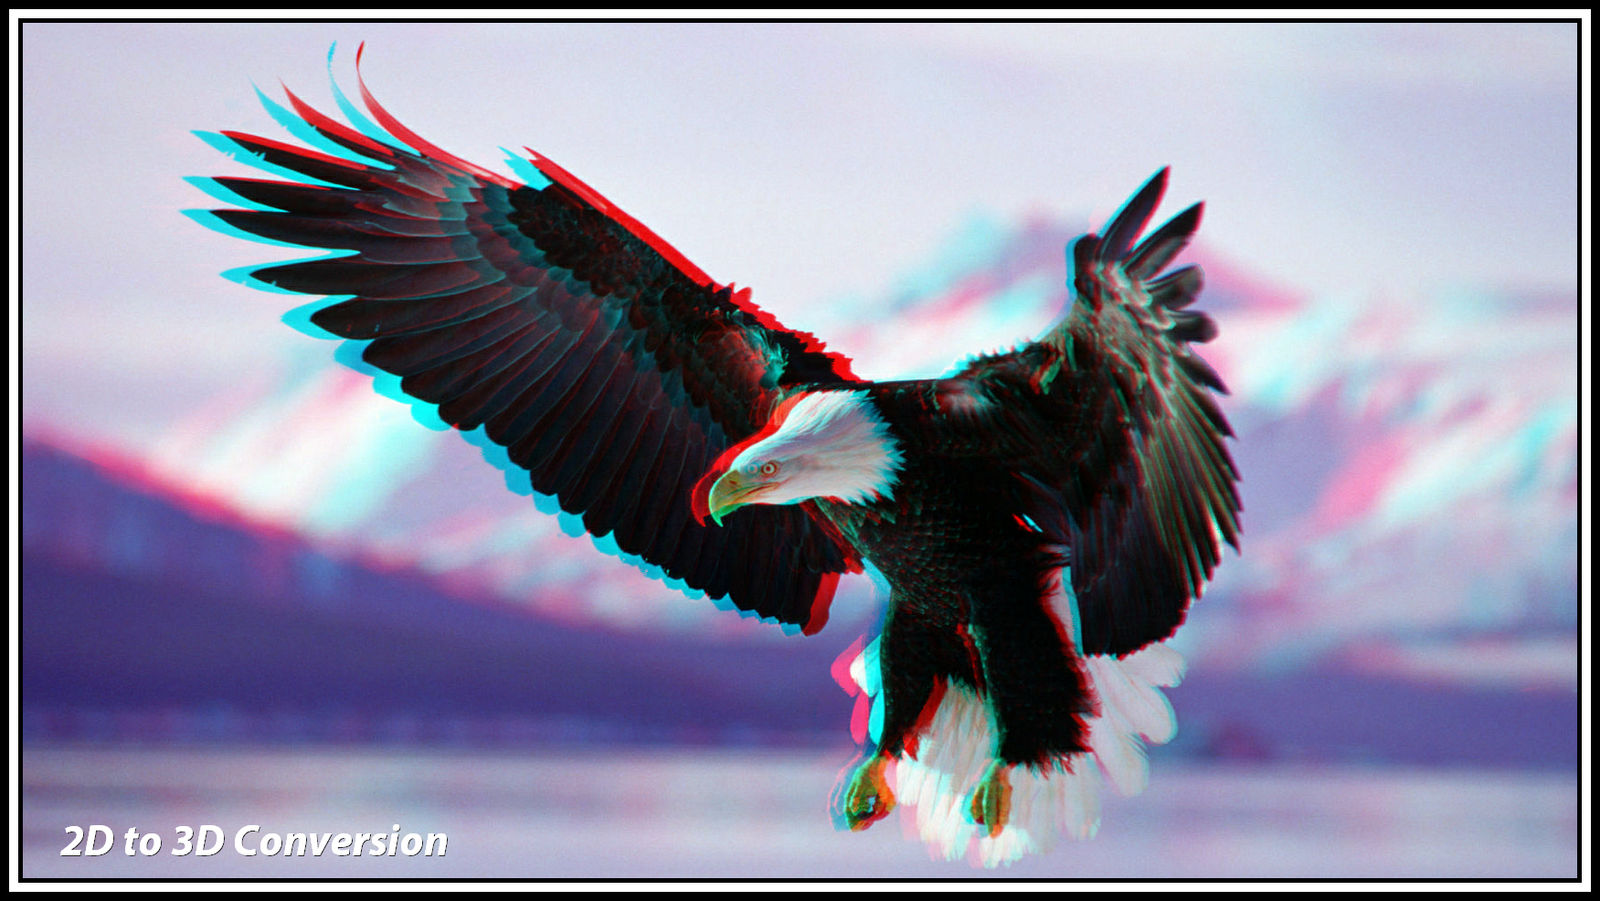 Eagle in flight 2D to 3D conversion by zippy6234 on DeviantArt